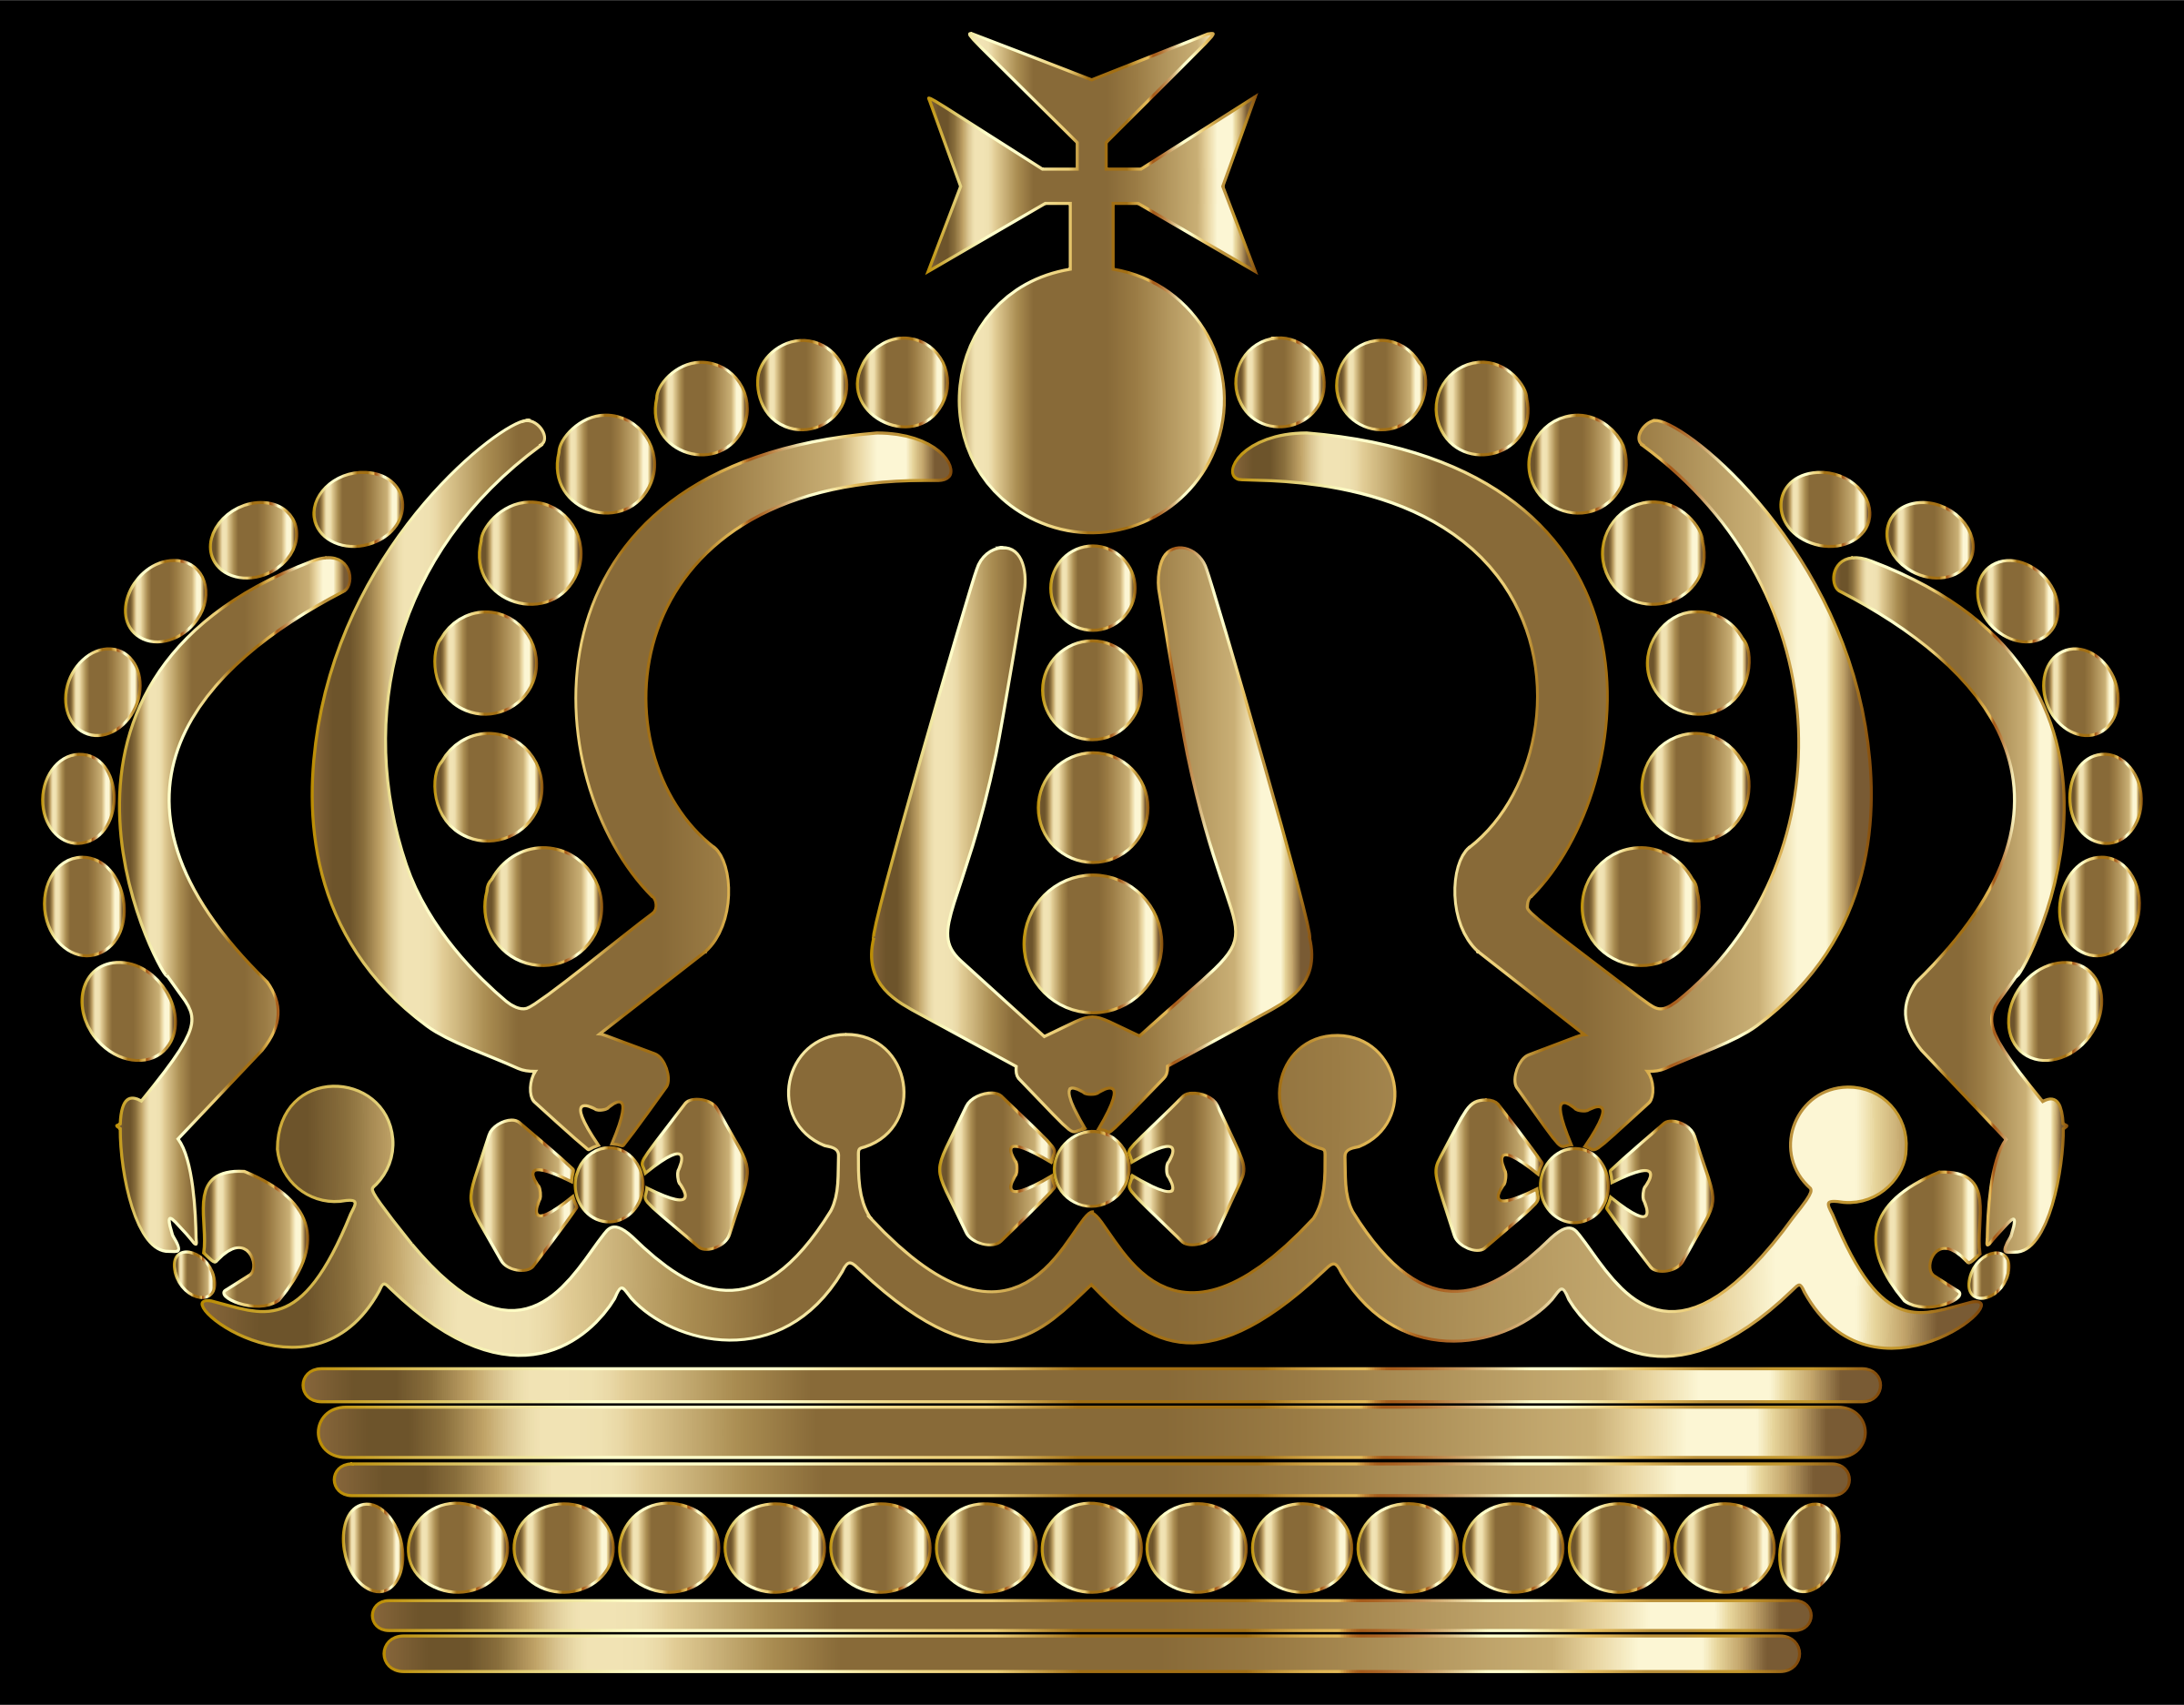 Clipart - Gold German Imperial Crown